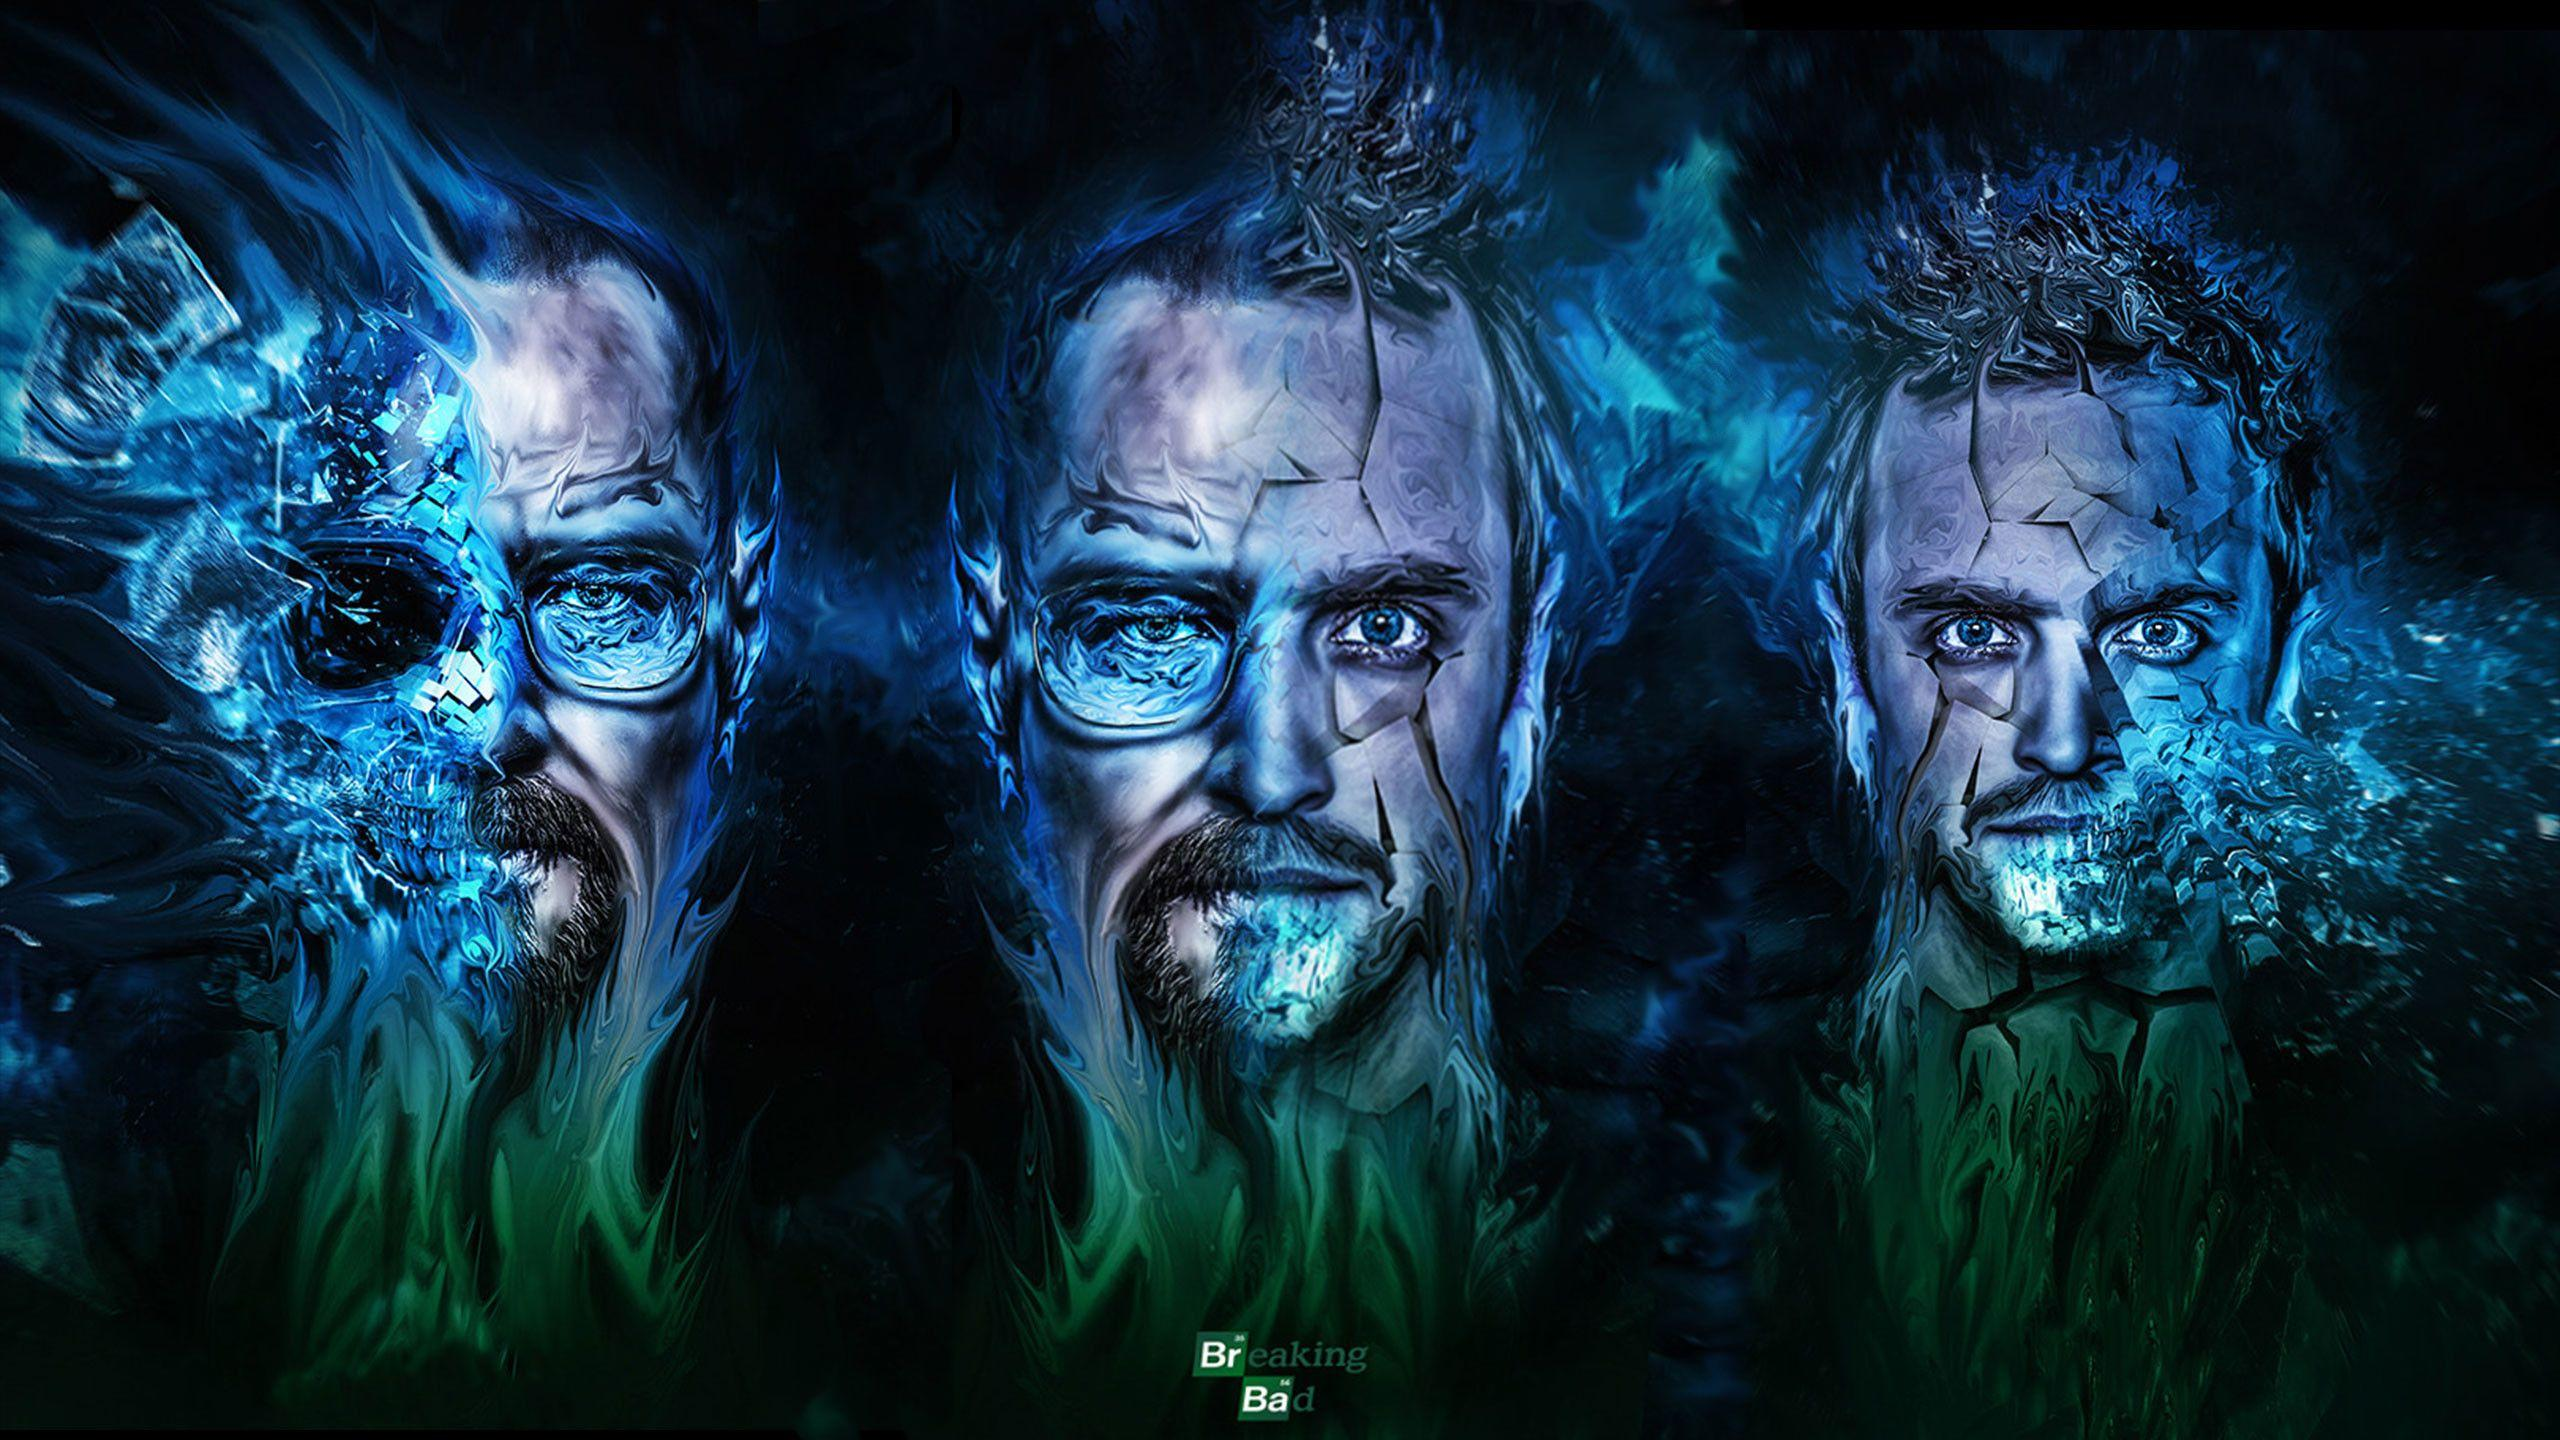 Breaking Bad Wallpapers All Hail The King - Wallpaper Cave